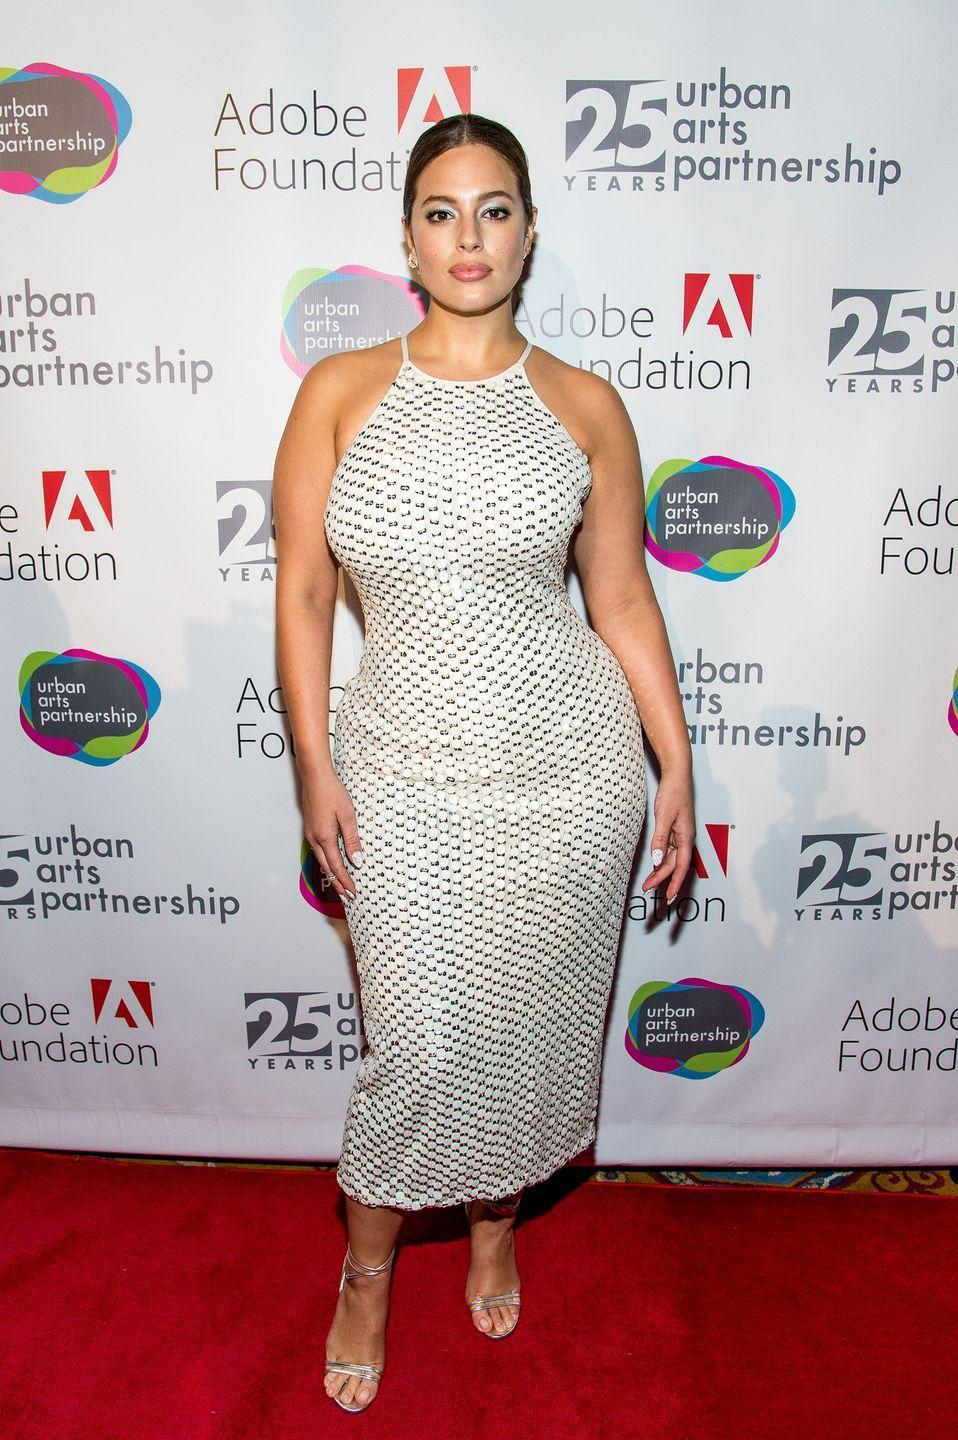 <p>Urban Arts Partnership 25th Anniversary, 2017: The shape of this halter on Ashley is all the fire.</p>